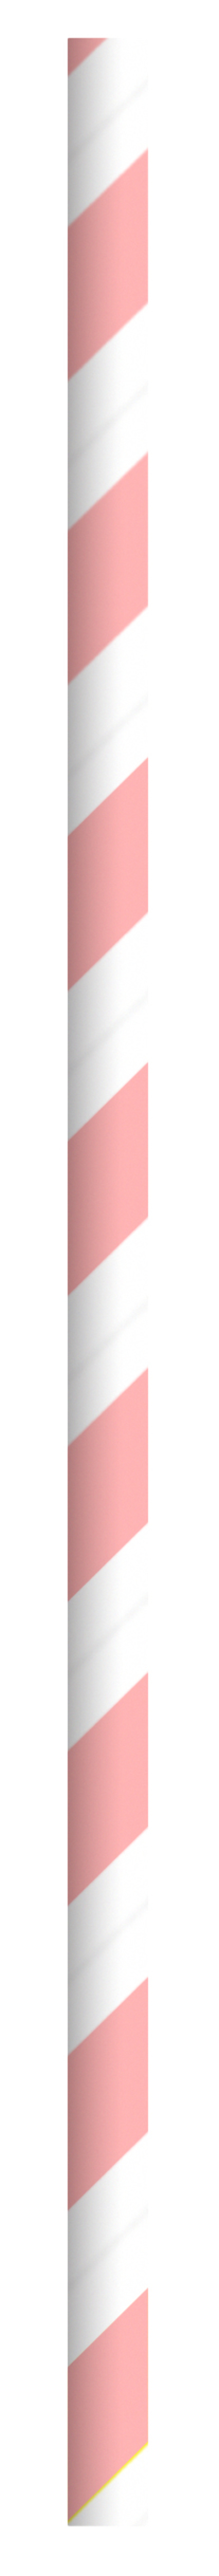 Durable Pink & White Striped Paper Straws - 7.75 Inches